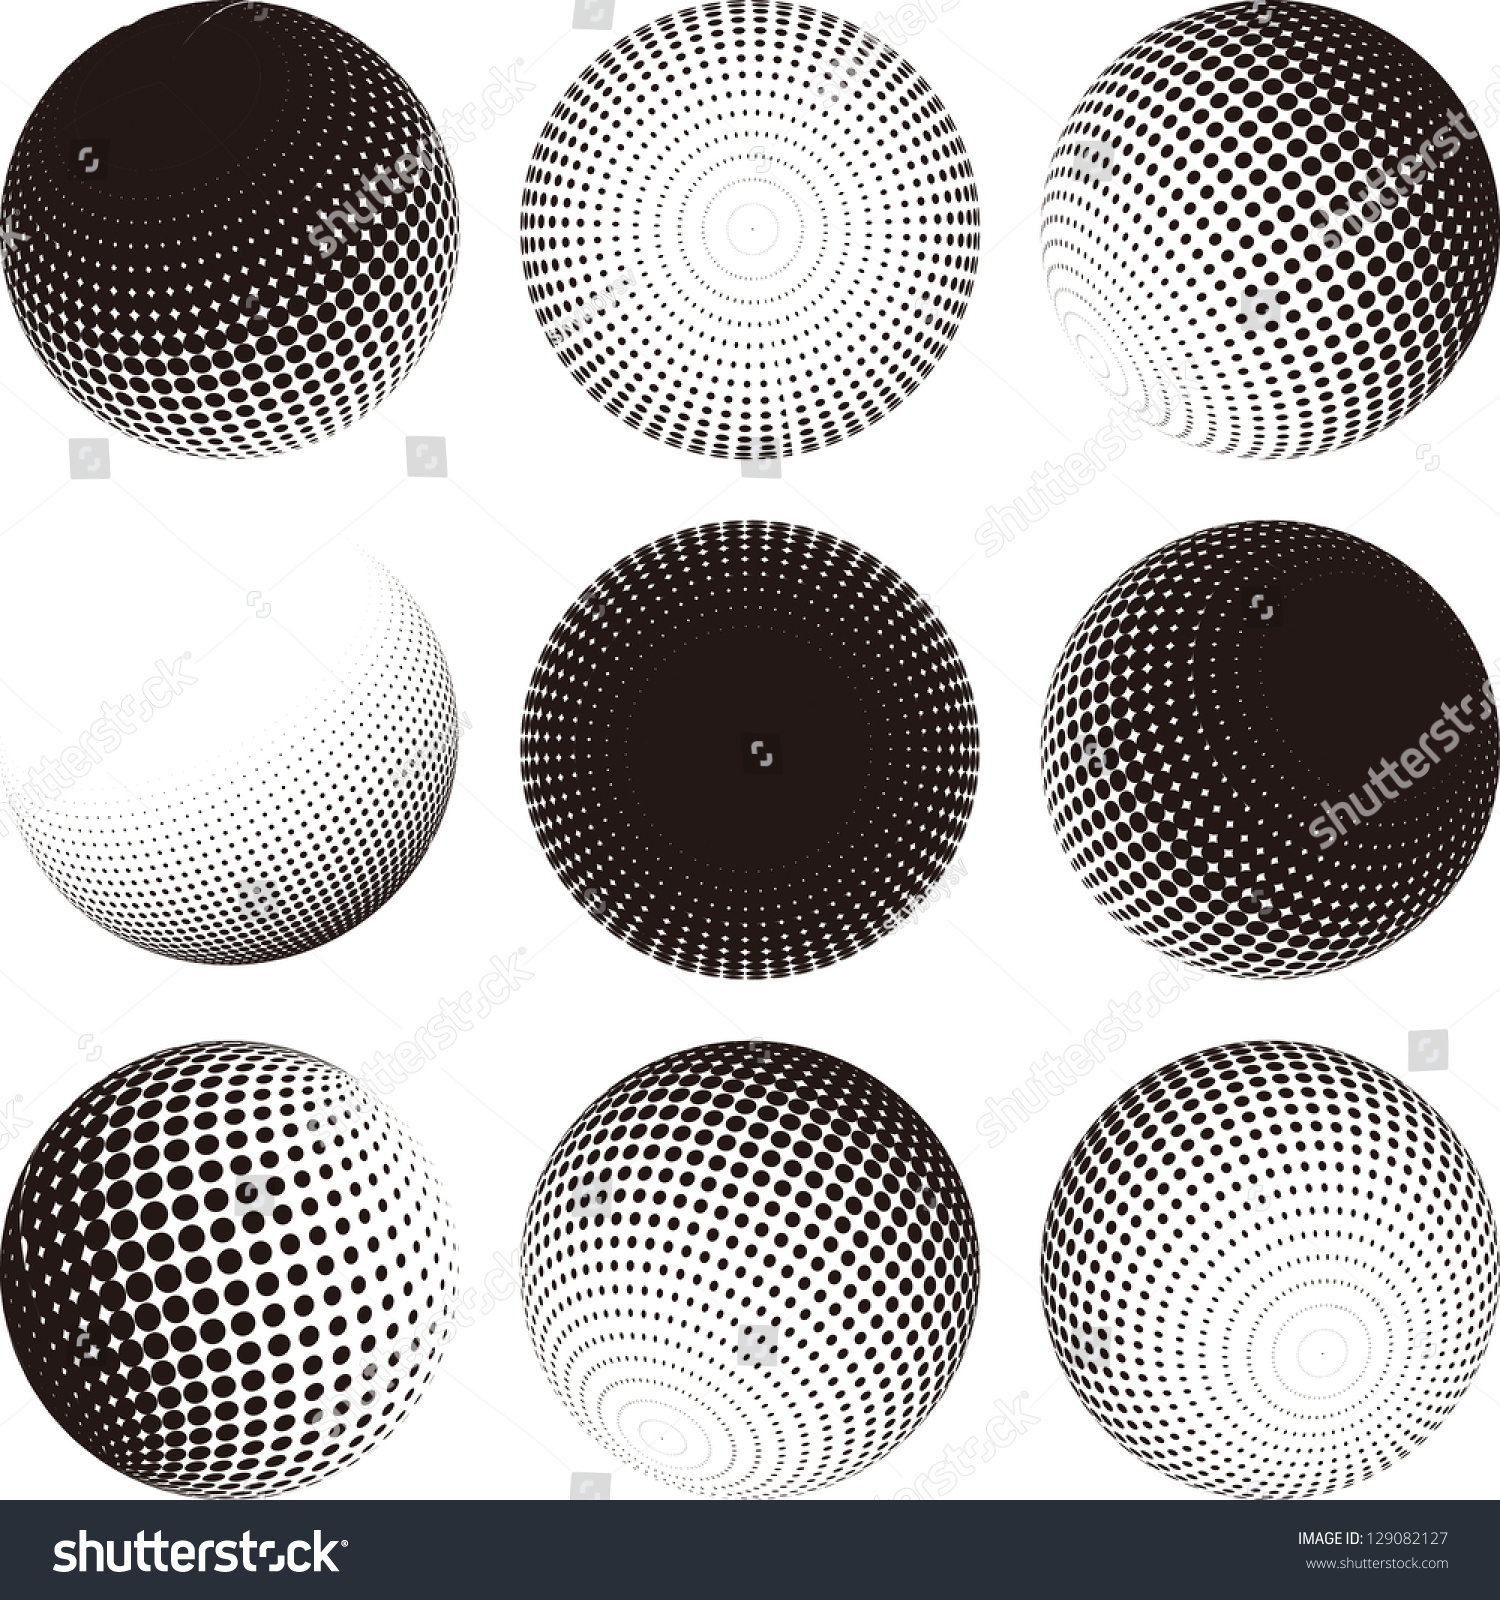 Collection halftone sphere vector logo template stock for Sphere net template